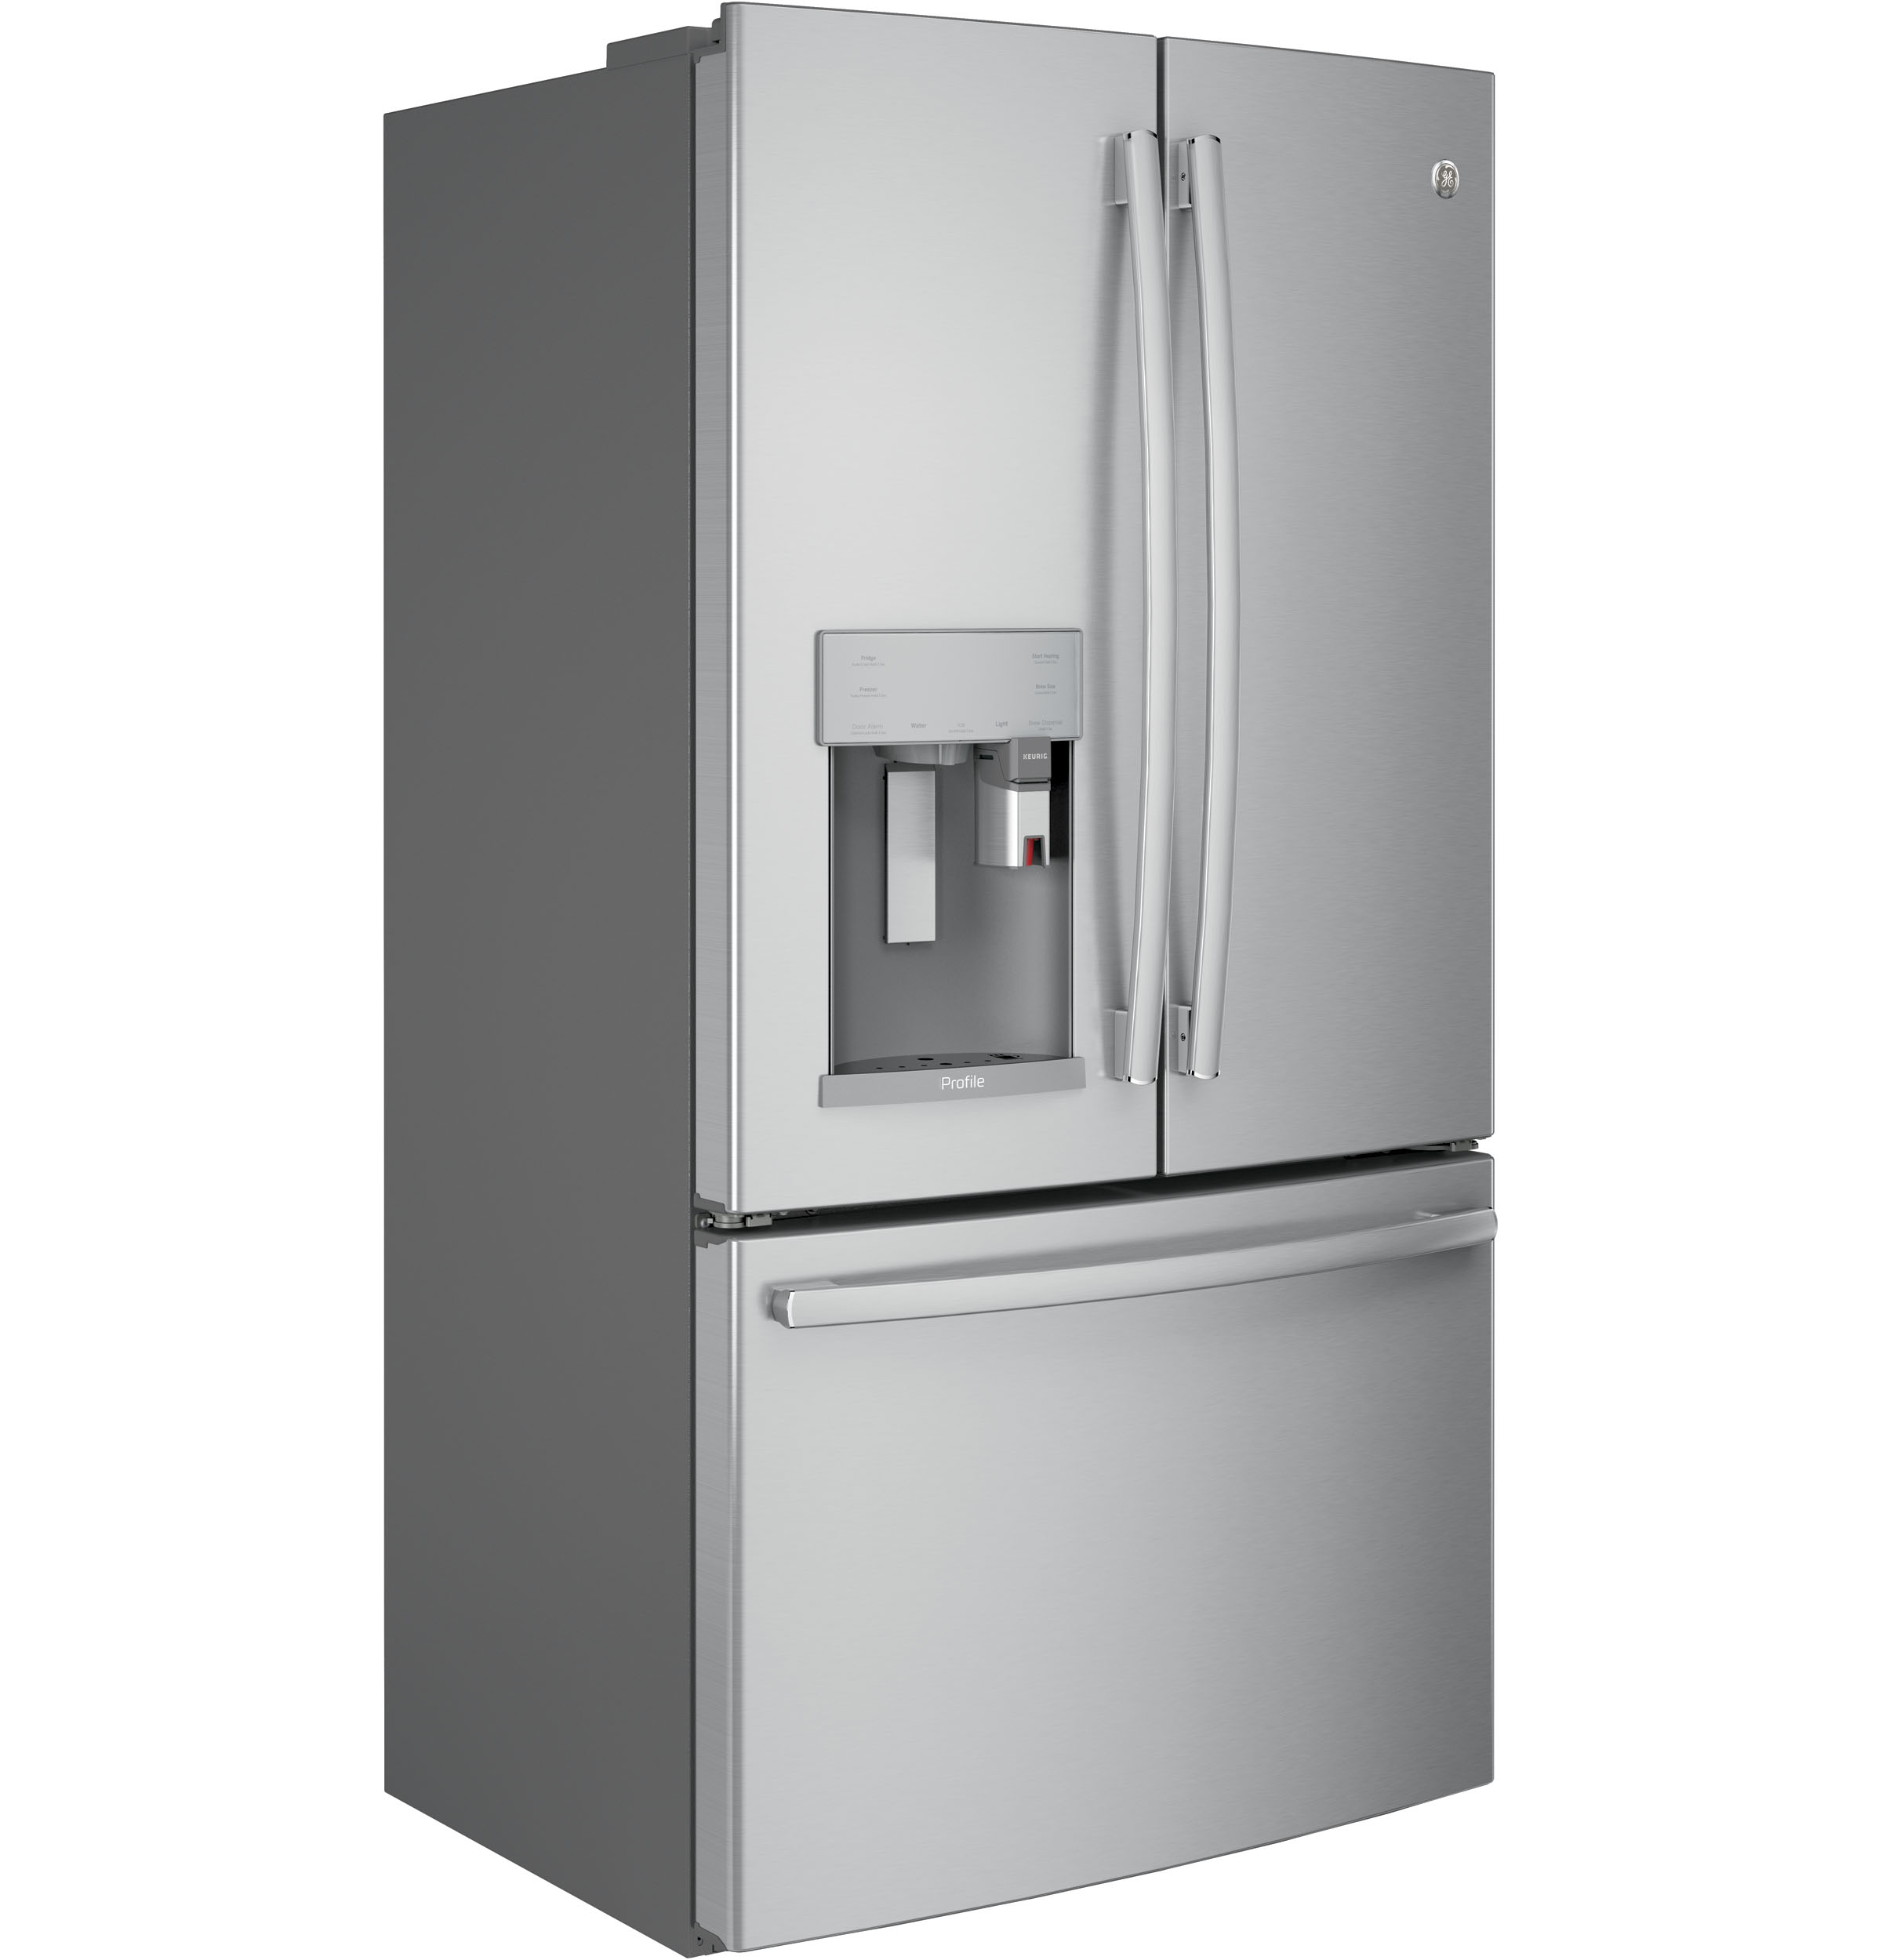 GE Profile Series PFE28PSKSS French Door Refrigerator with K-Cup Brewing System